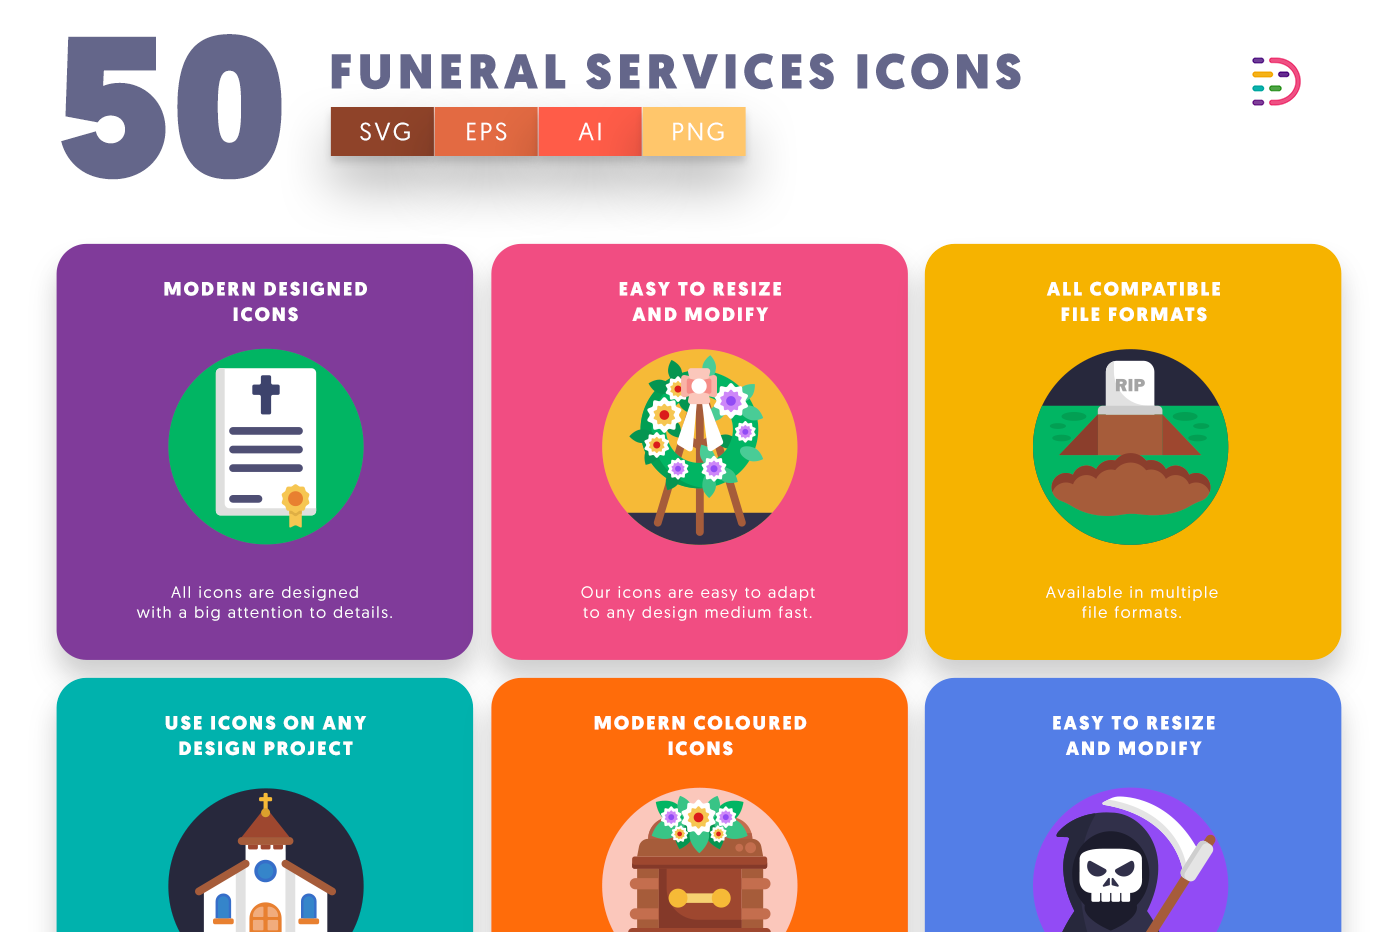 50 Funeral Services Icons with colored backgrounds